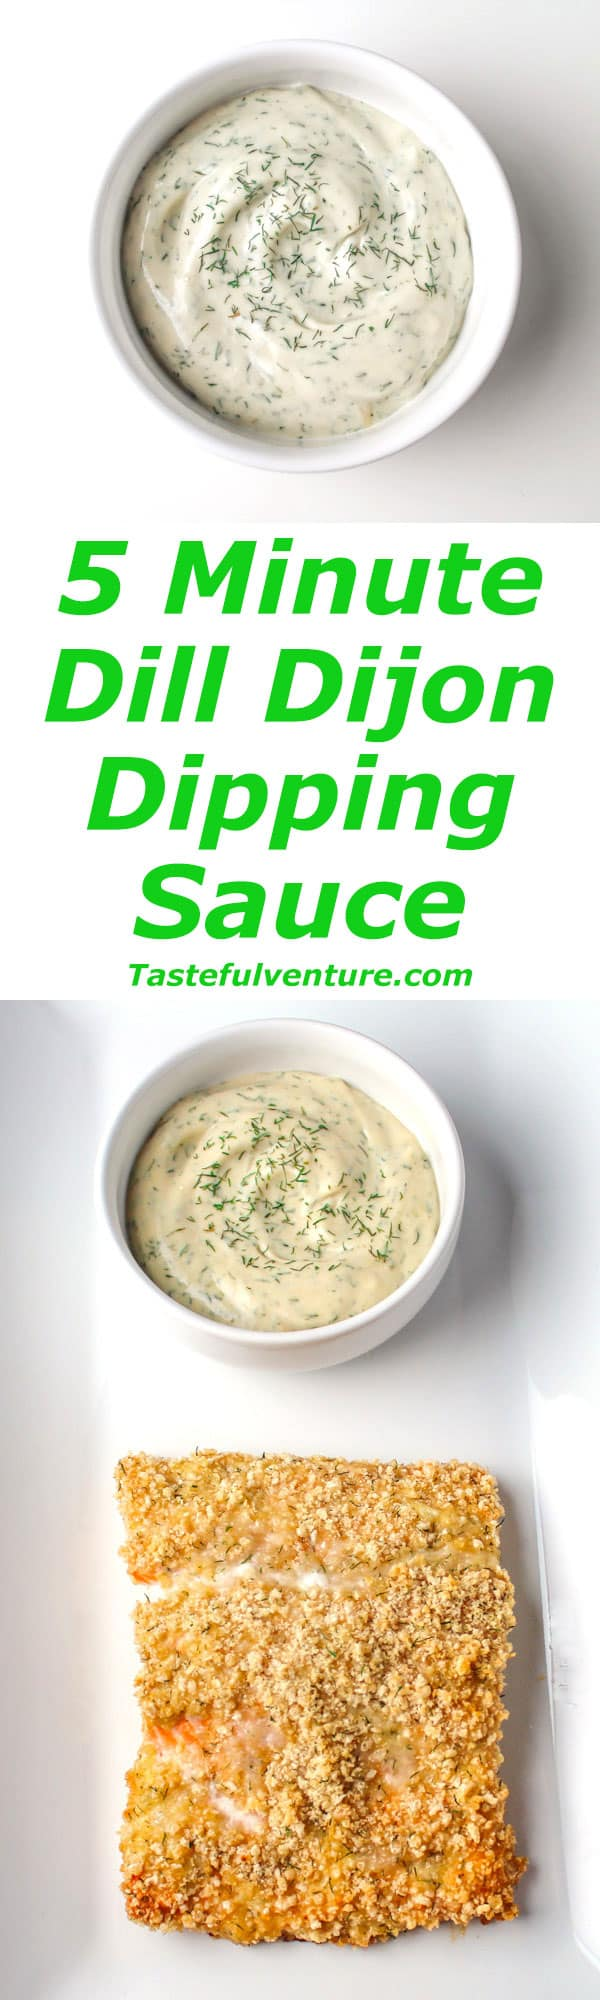 Dill Dijon Dipping Sauce that can be made in 5 Minutes, this is Dairy Free and Gluten Free too! | Tastefulventure.com